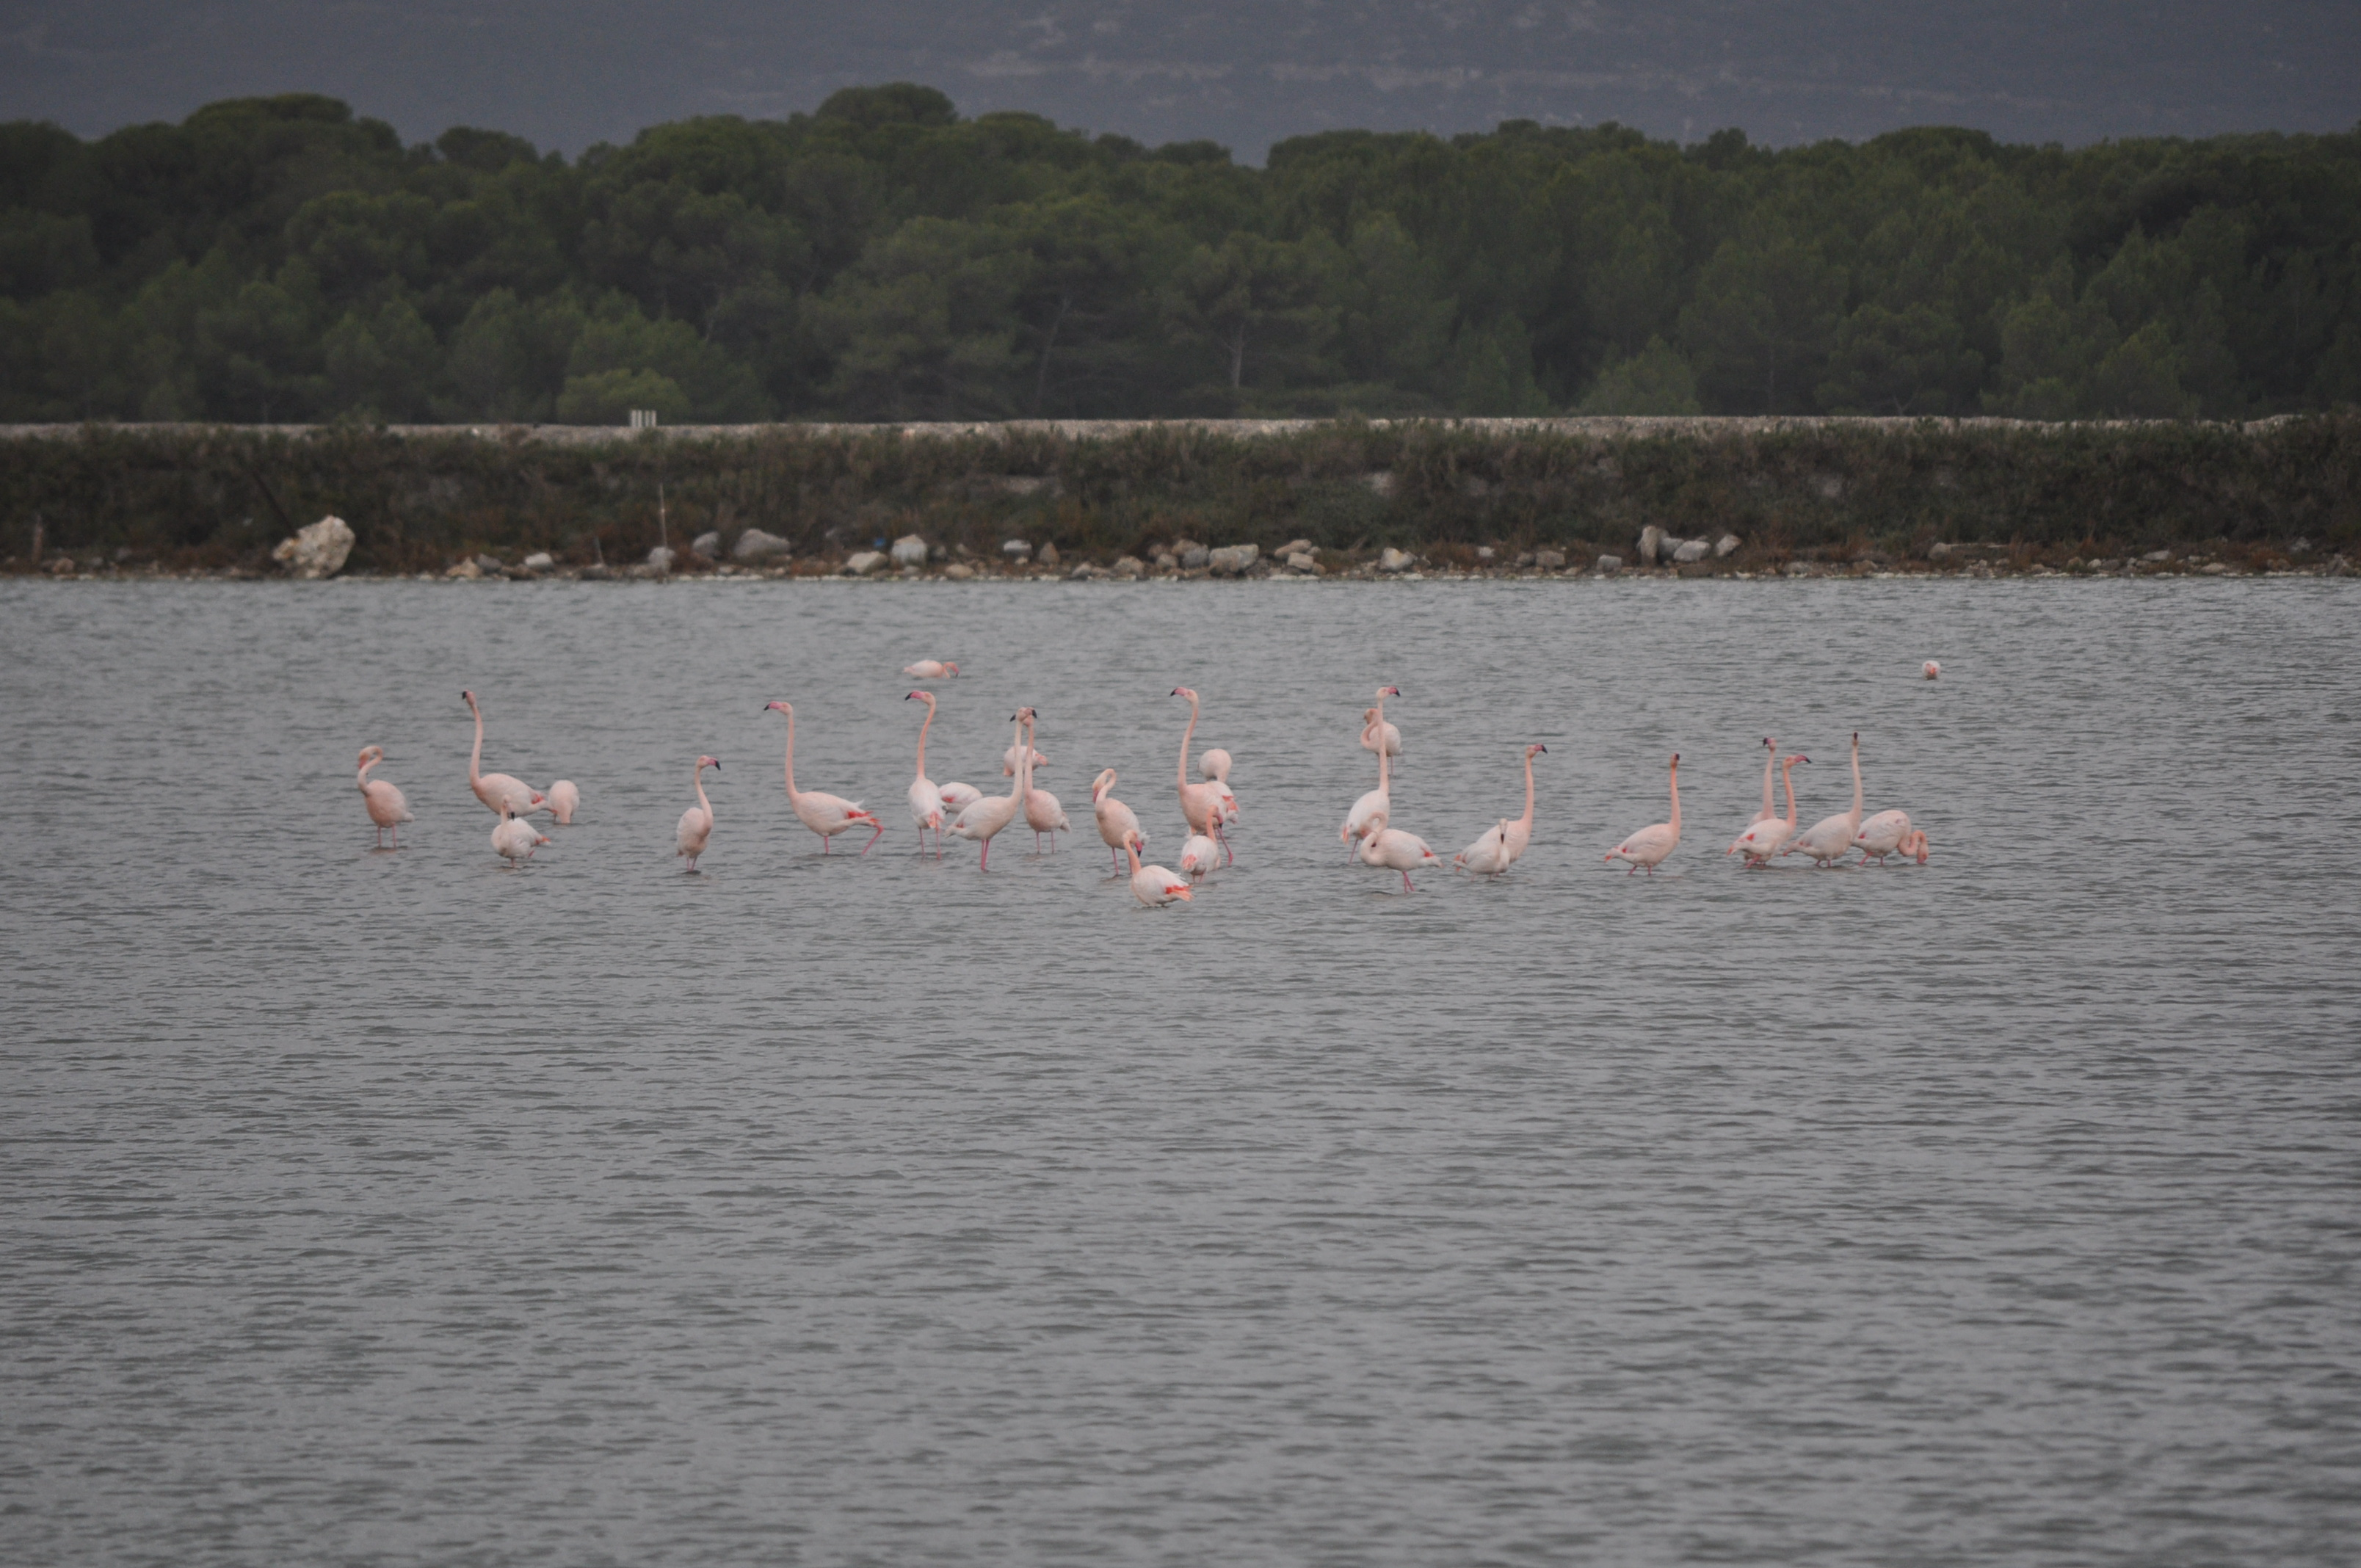 Les flamants à Frontignan